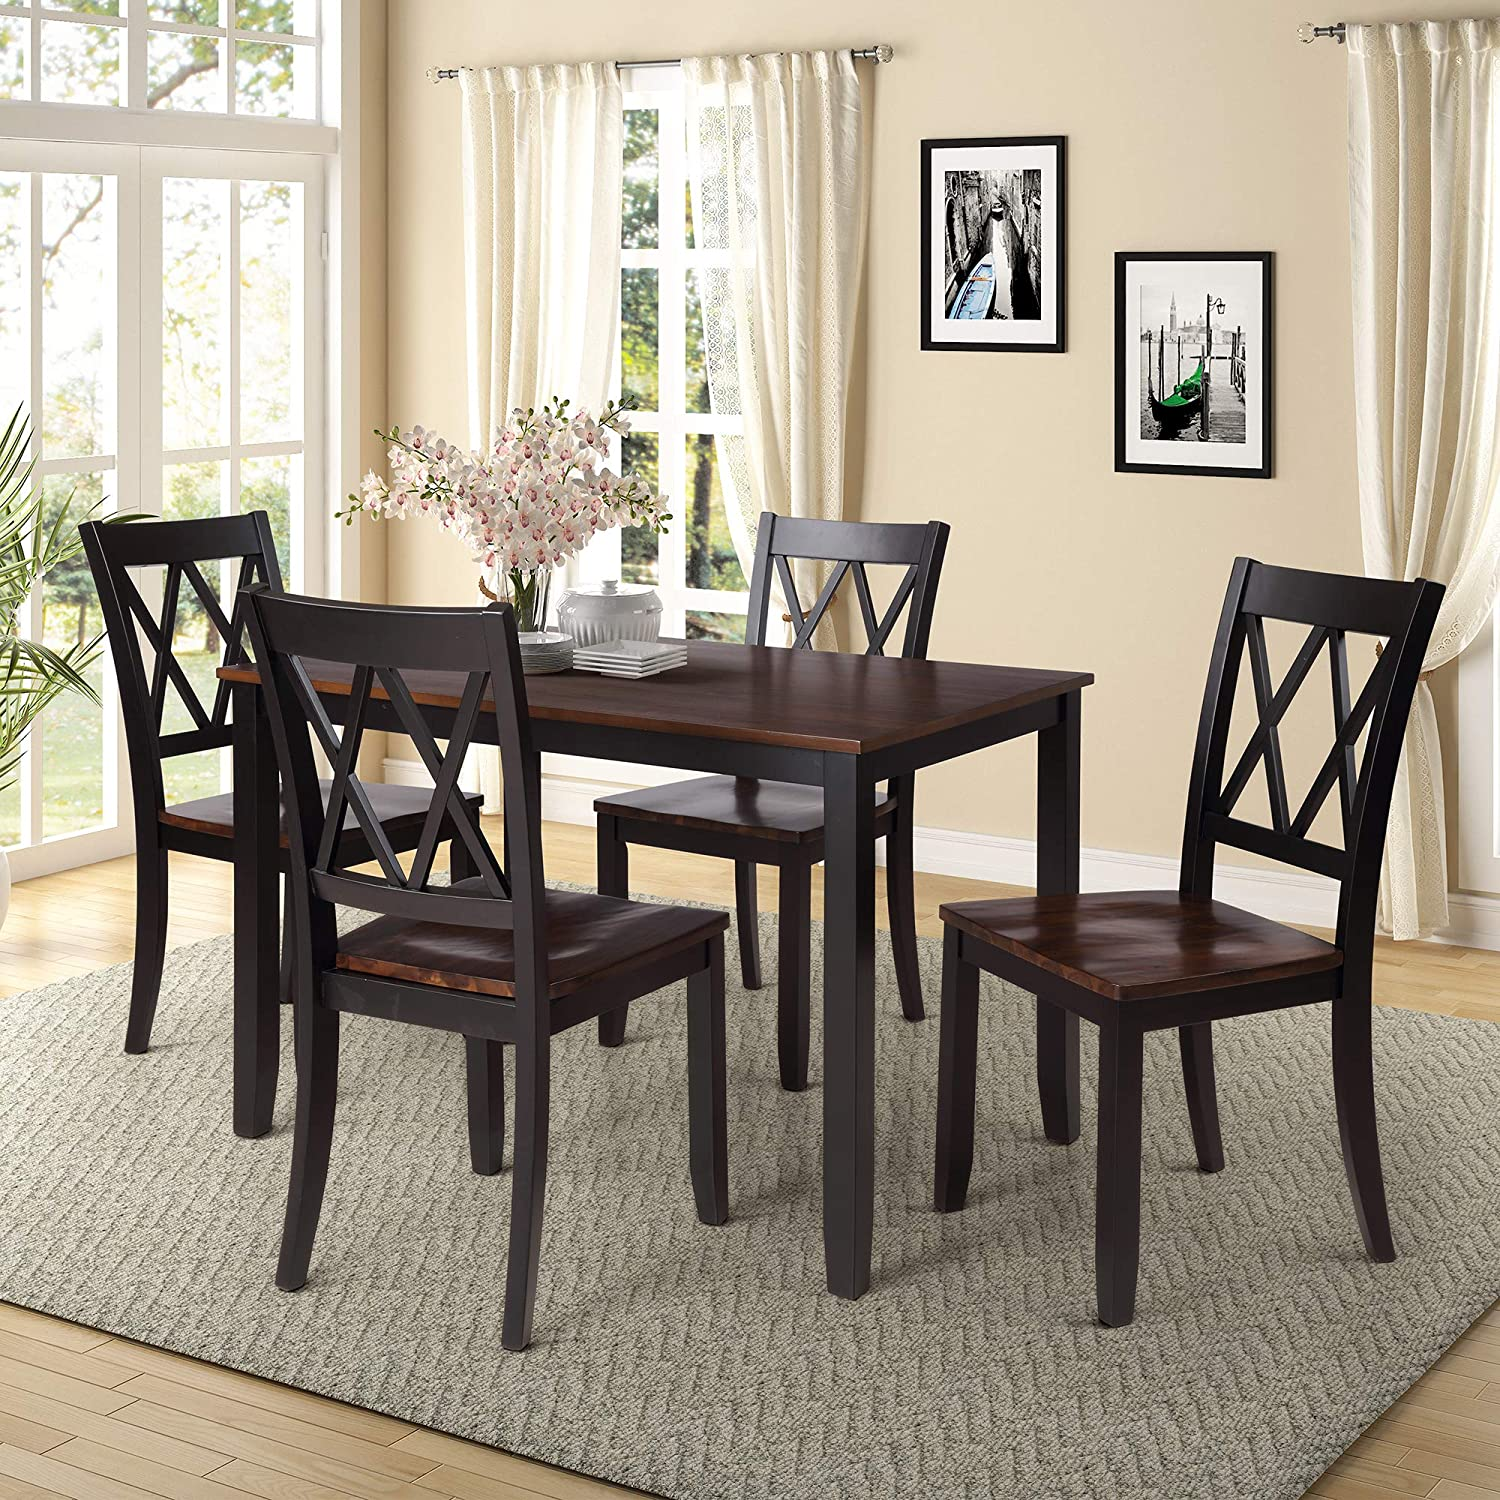 P PURLOVE 5-Piece Dining Table Set Modern Style Home Kitchen Table Set for 4 Persons Black Cherry